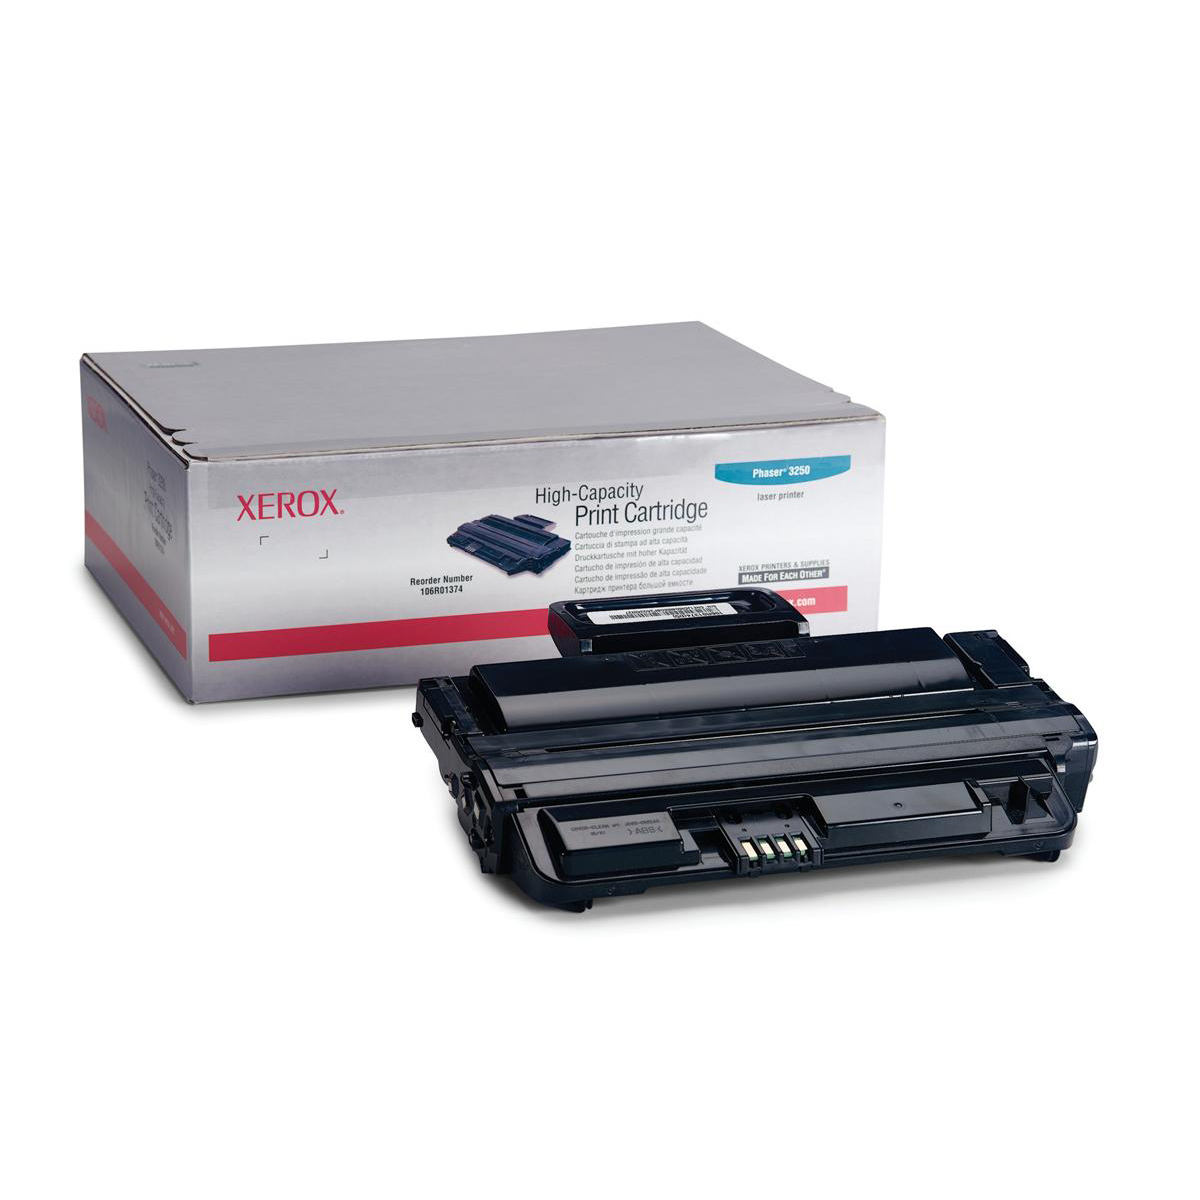 Laser Toner Cartridges Xerox Phaser 3250 Laser Toner Cartridge Page Life 5000pp Black Ref 106R01374